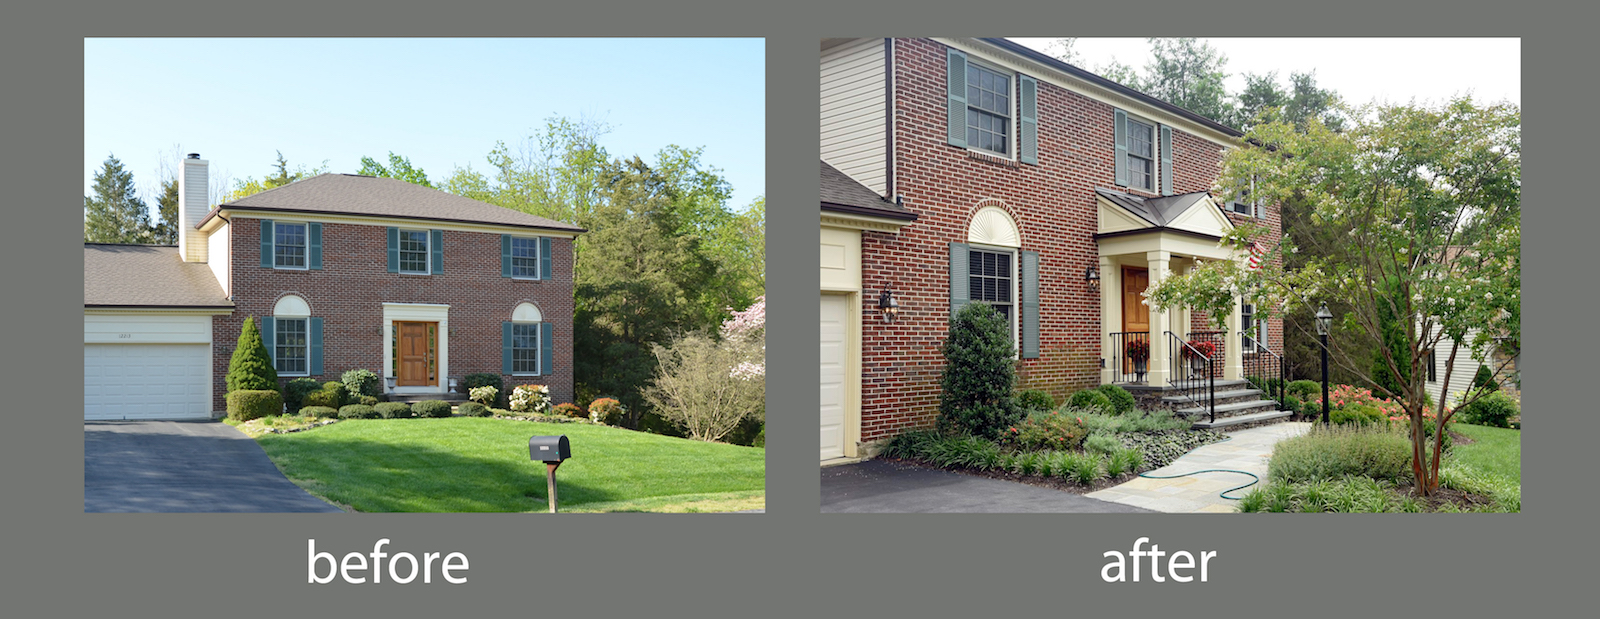 before/after front yard landscape design herndon va